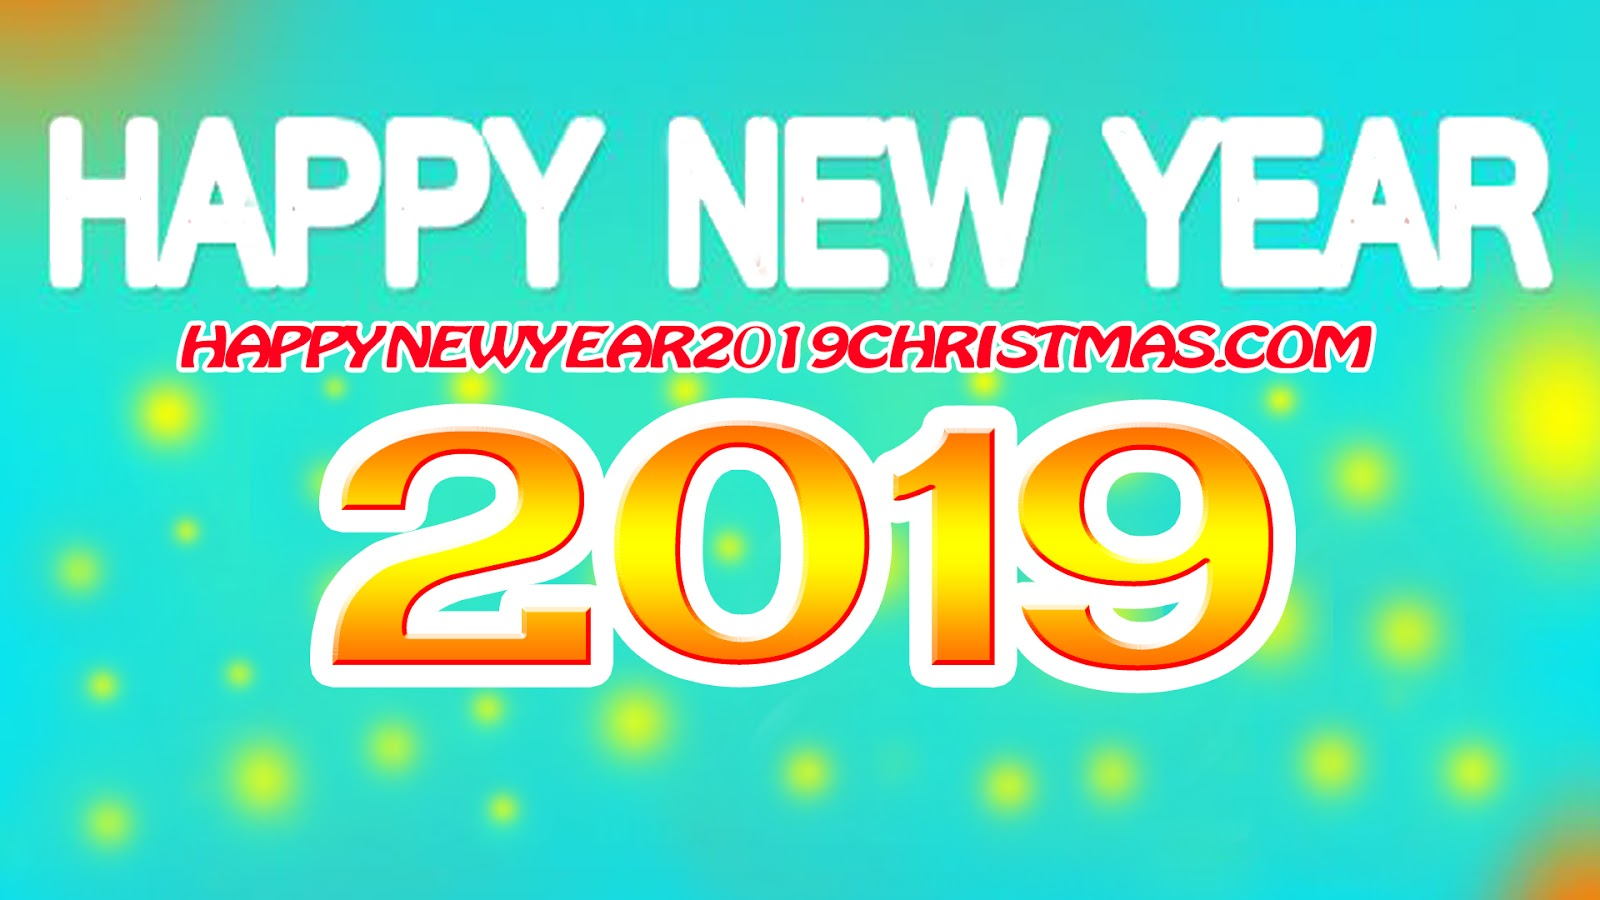 Happy new year 2019 greeting cards happy new year 2019 images happy new year 2019 greeting cards m4hsunfo